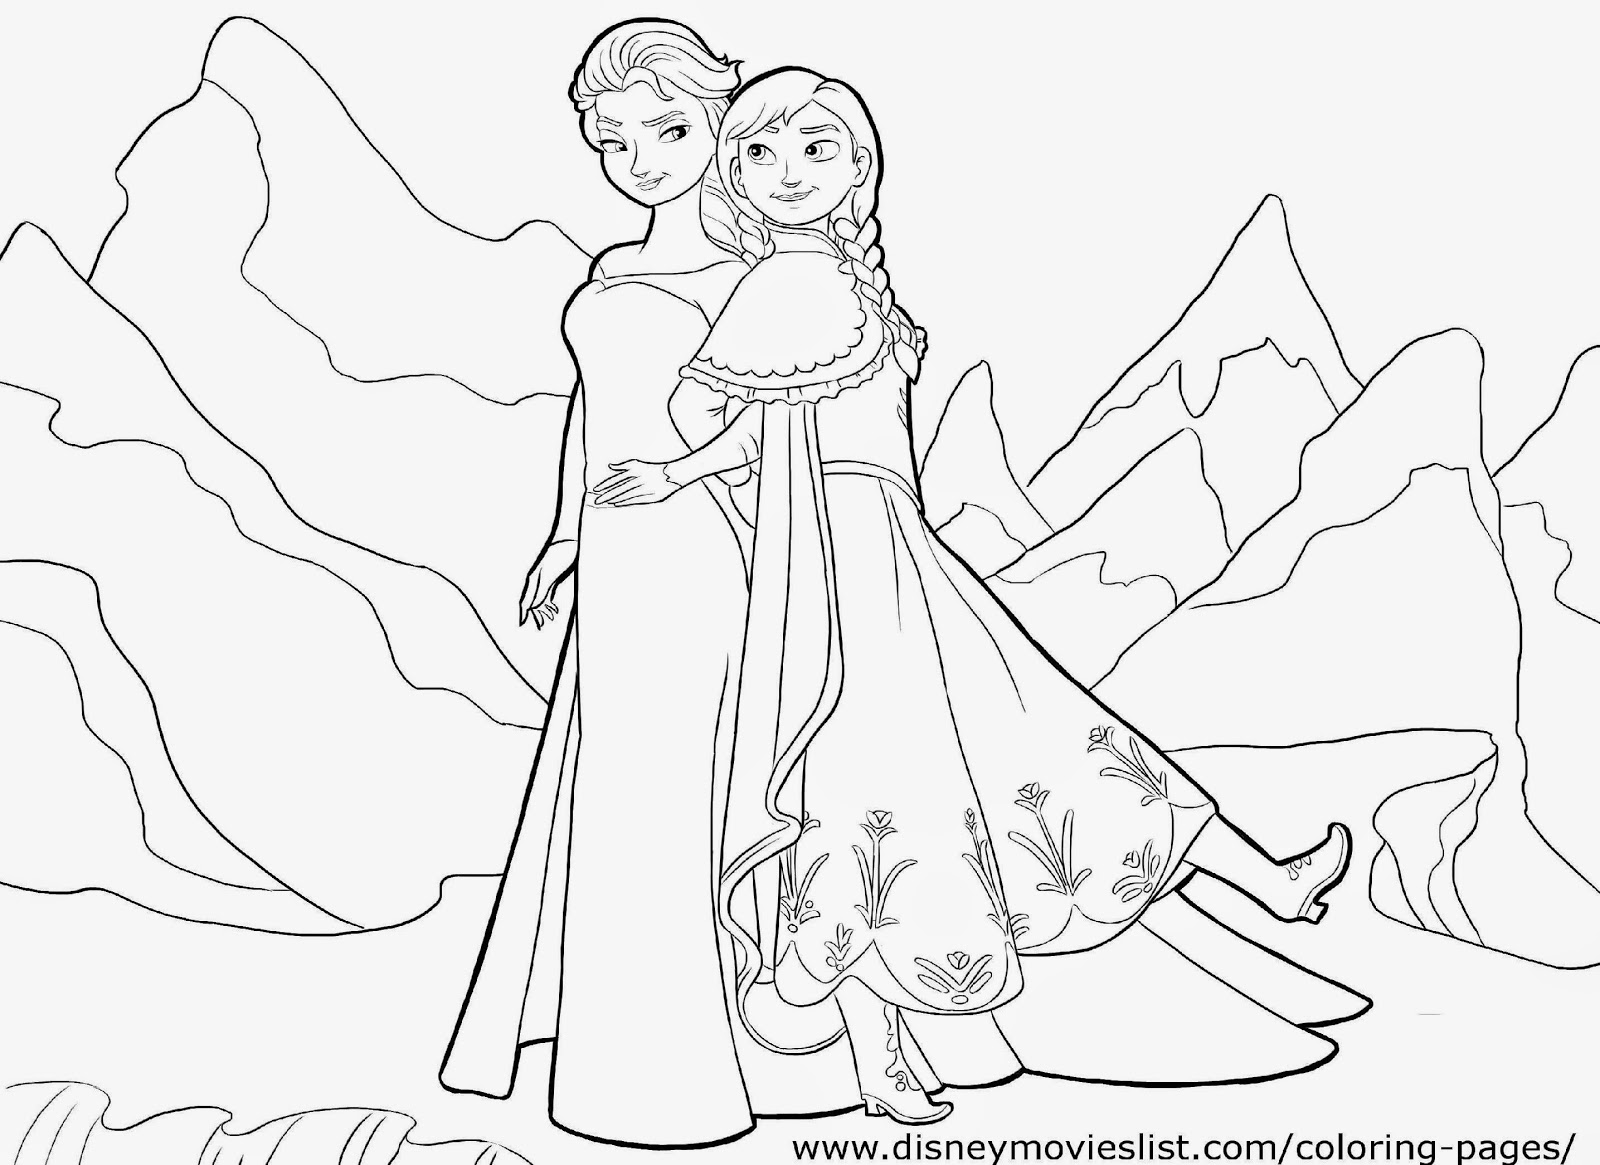 elsa and anna coloring printables 101 frozen coloring pages july 2018 edition elsa printables elsa anna and coloring